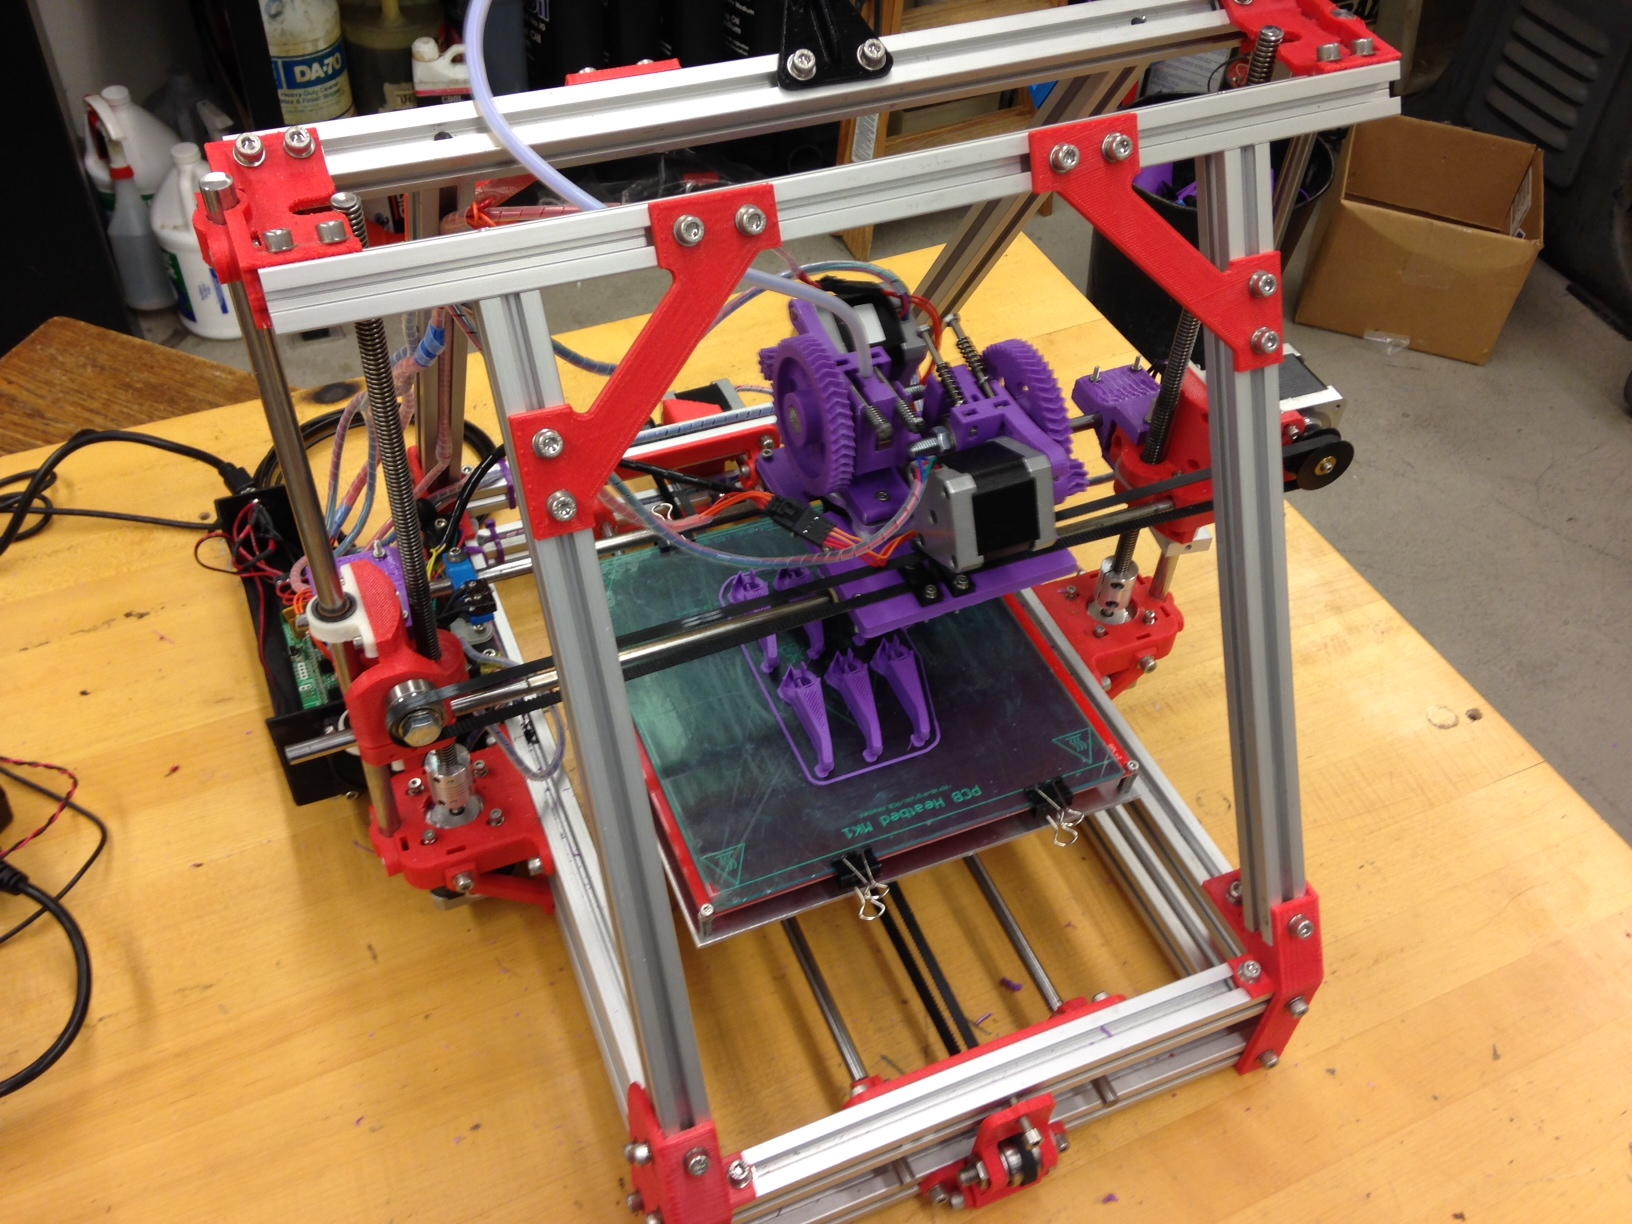 A RepRap 3D printer (built by students Winter Study 2013) is available for student use. The printer fabricates parts using a variety of plastics based on 3D models either created in the shop or downloaded from the internet.